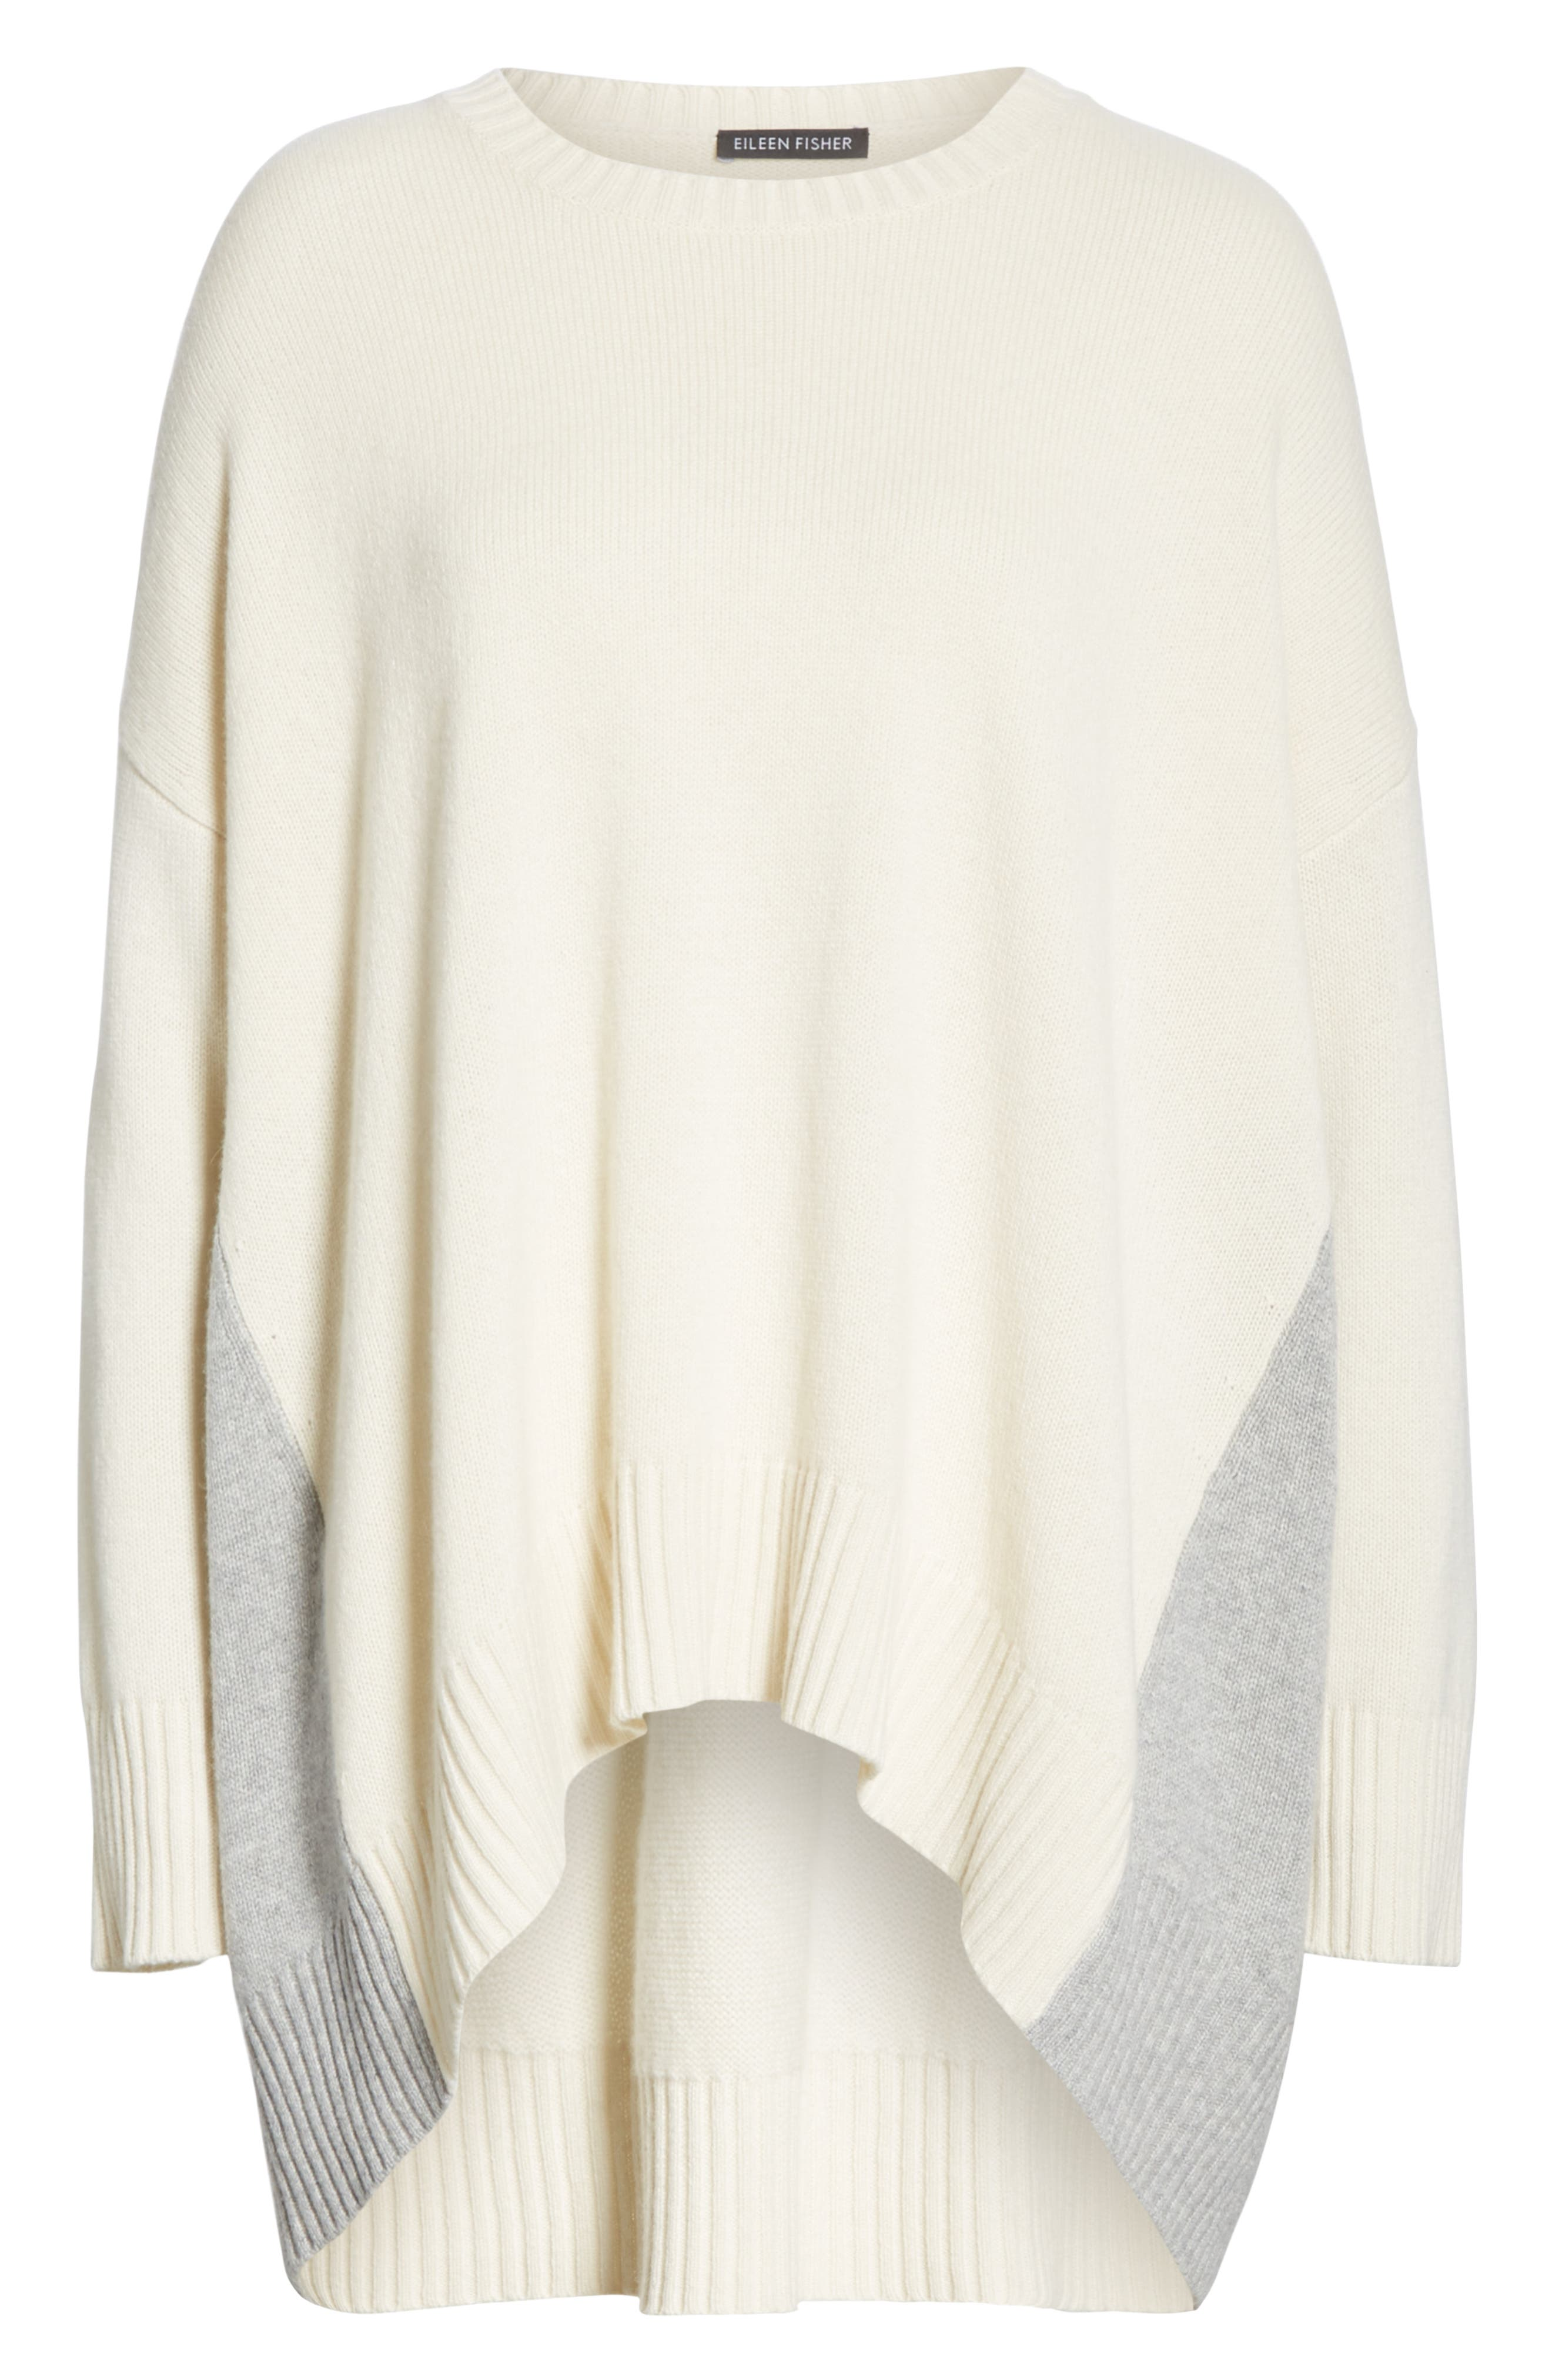 Oversize Cashmere & Wool Sweater,                             Alternate thumbnail 6, color,                             SOFT WHITE/ DARK PEARL